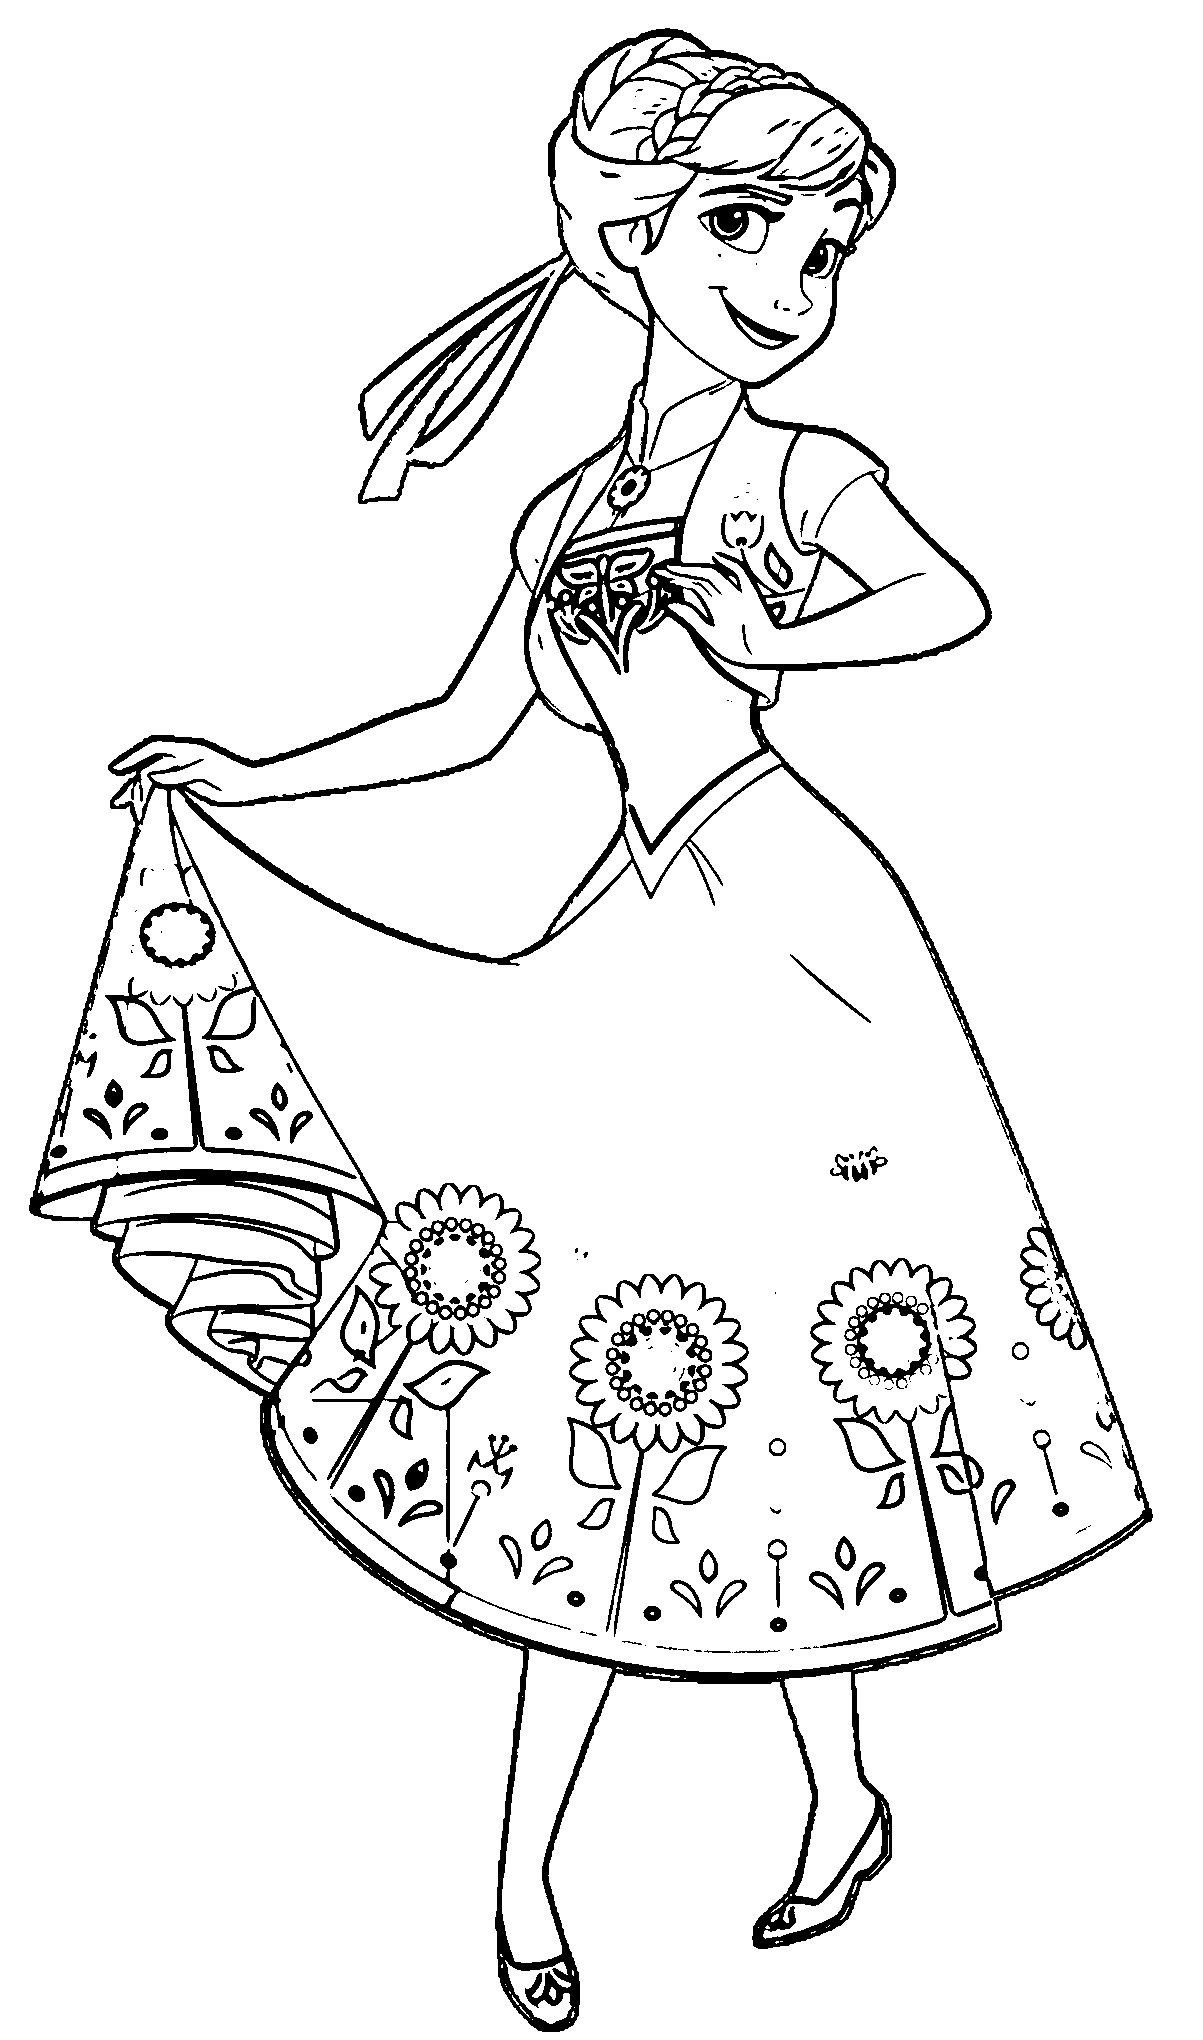 Great Image Of Elsa Anna Coloring Pages Davemelillo Com Elsa Coloring Pages Rapunzel Coloring Pages Barbie Coloring Pages